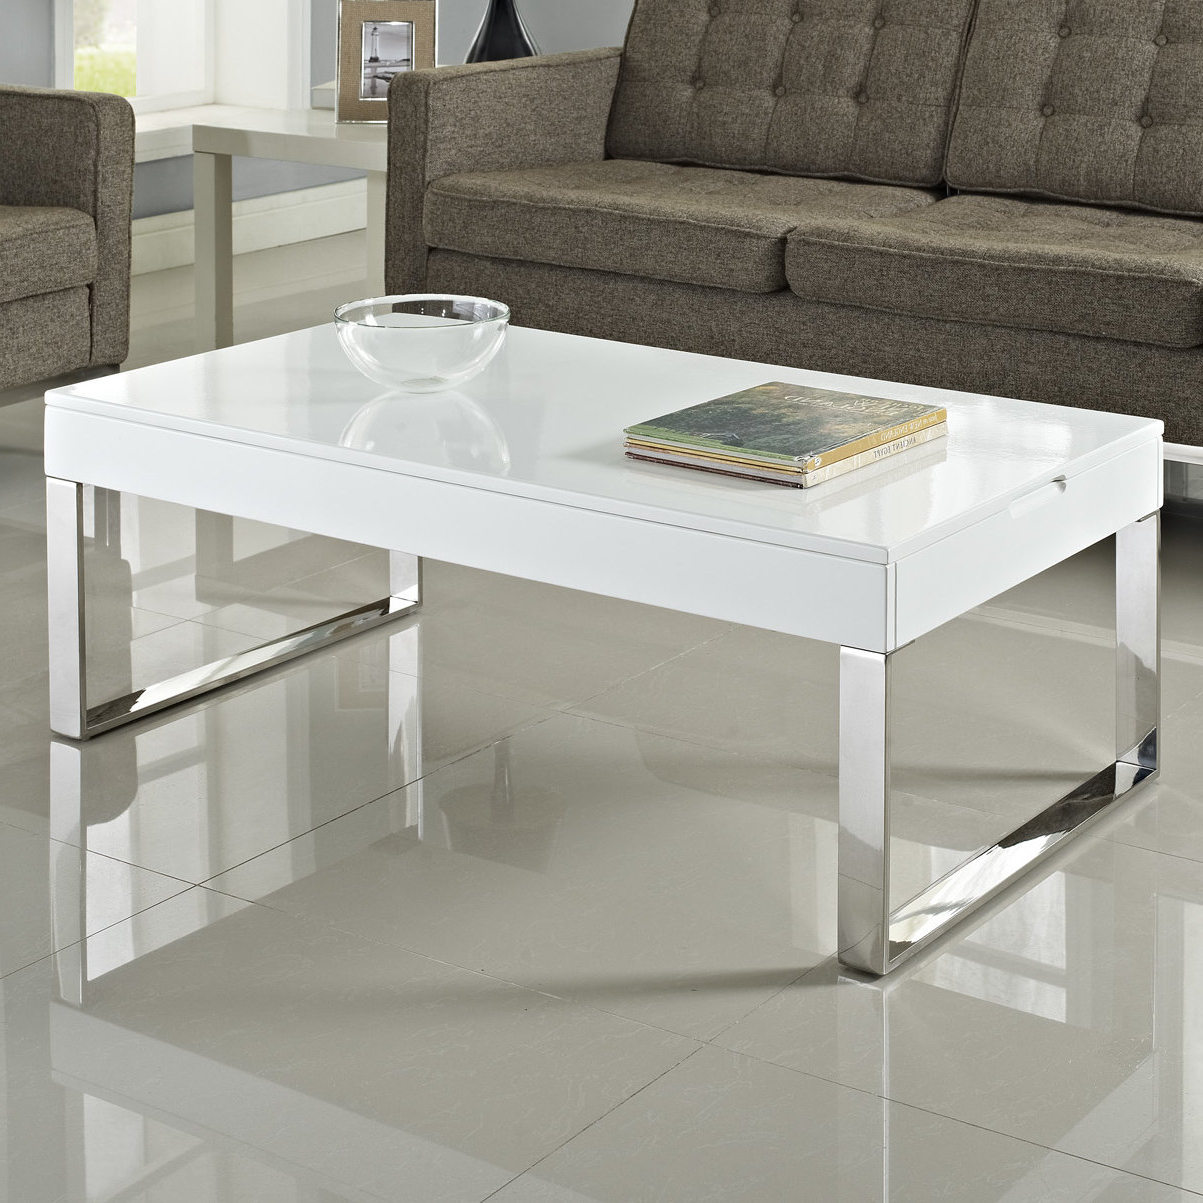 Stack Hi Gloss Wood Coffee Tables Pertaining To Current Modway Gloss Coffee Table & Reviews (Gallery 12 of 20)